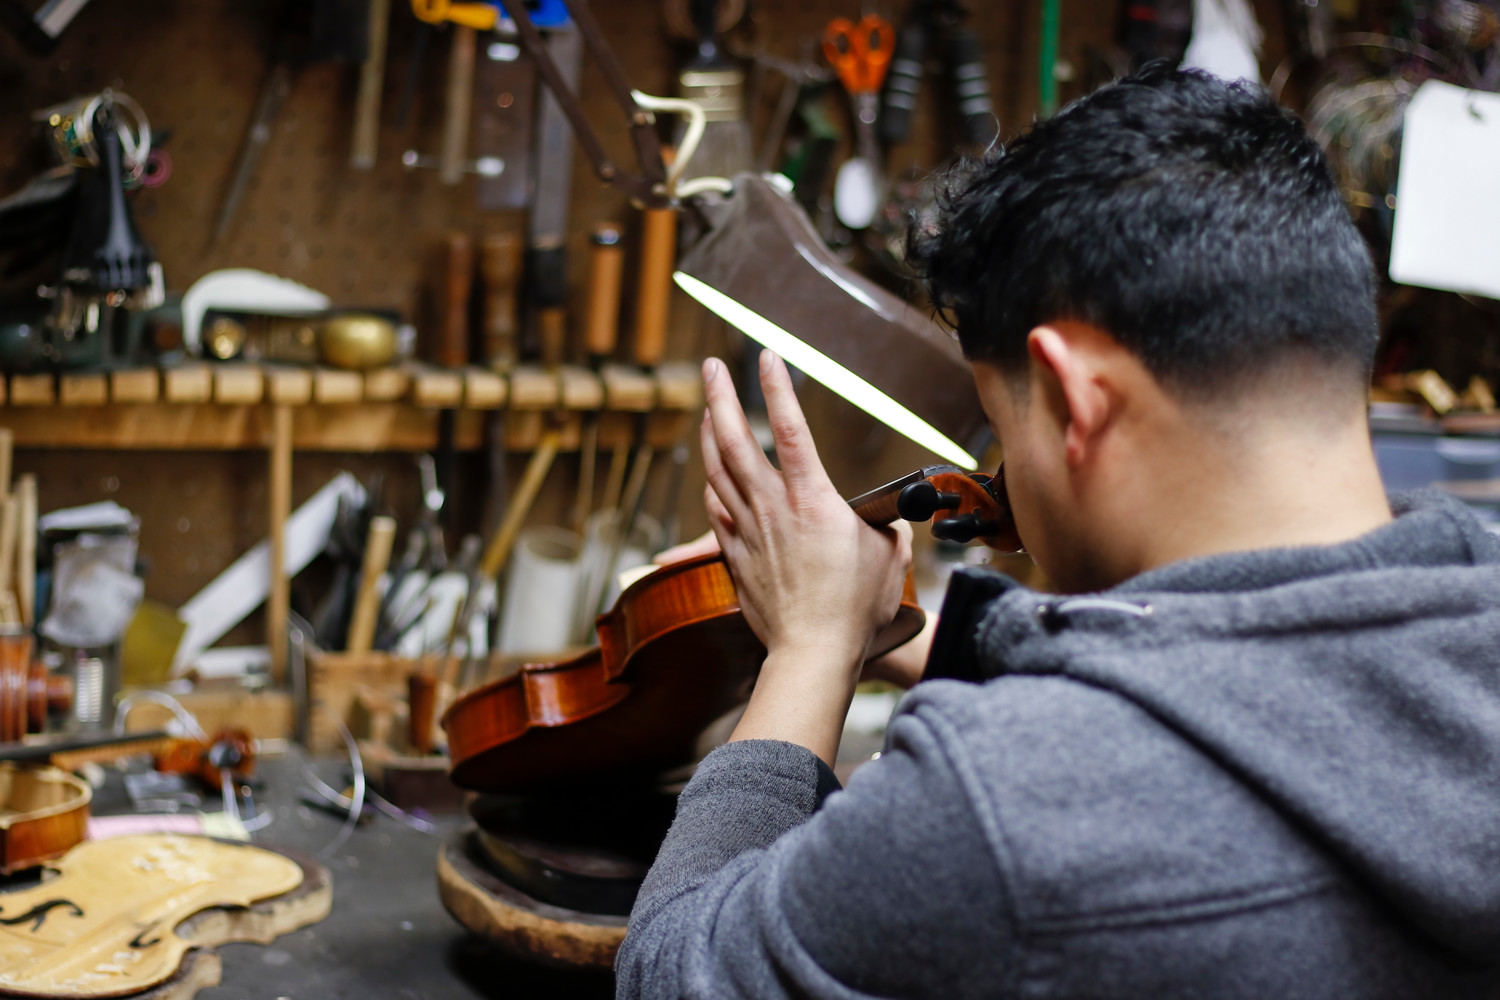 After truing the fingerboard Rigoberto Dubon added the strings back to the violin.